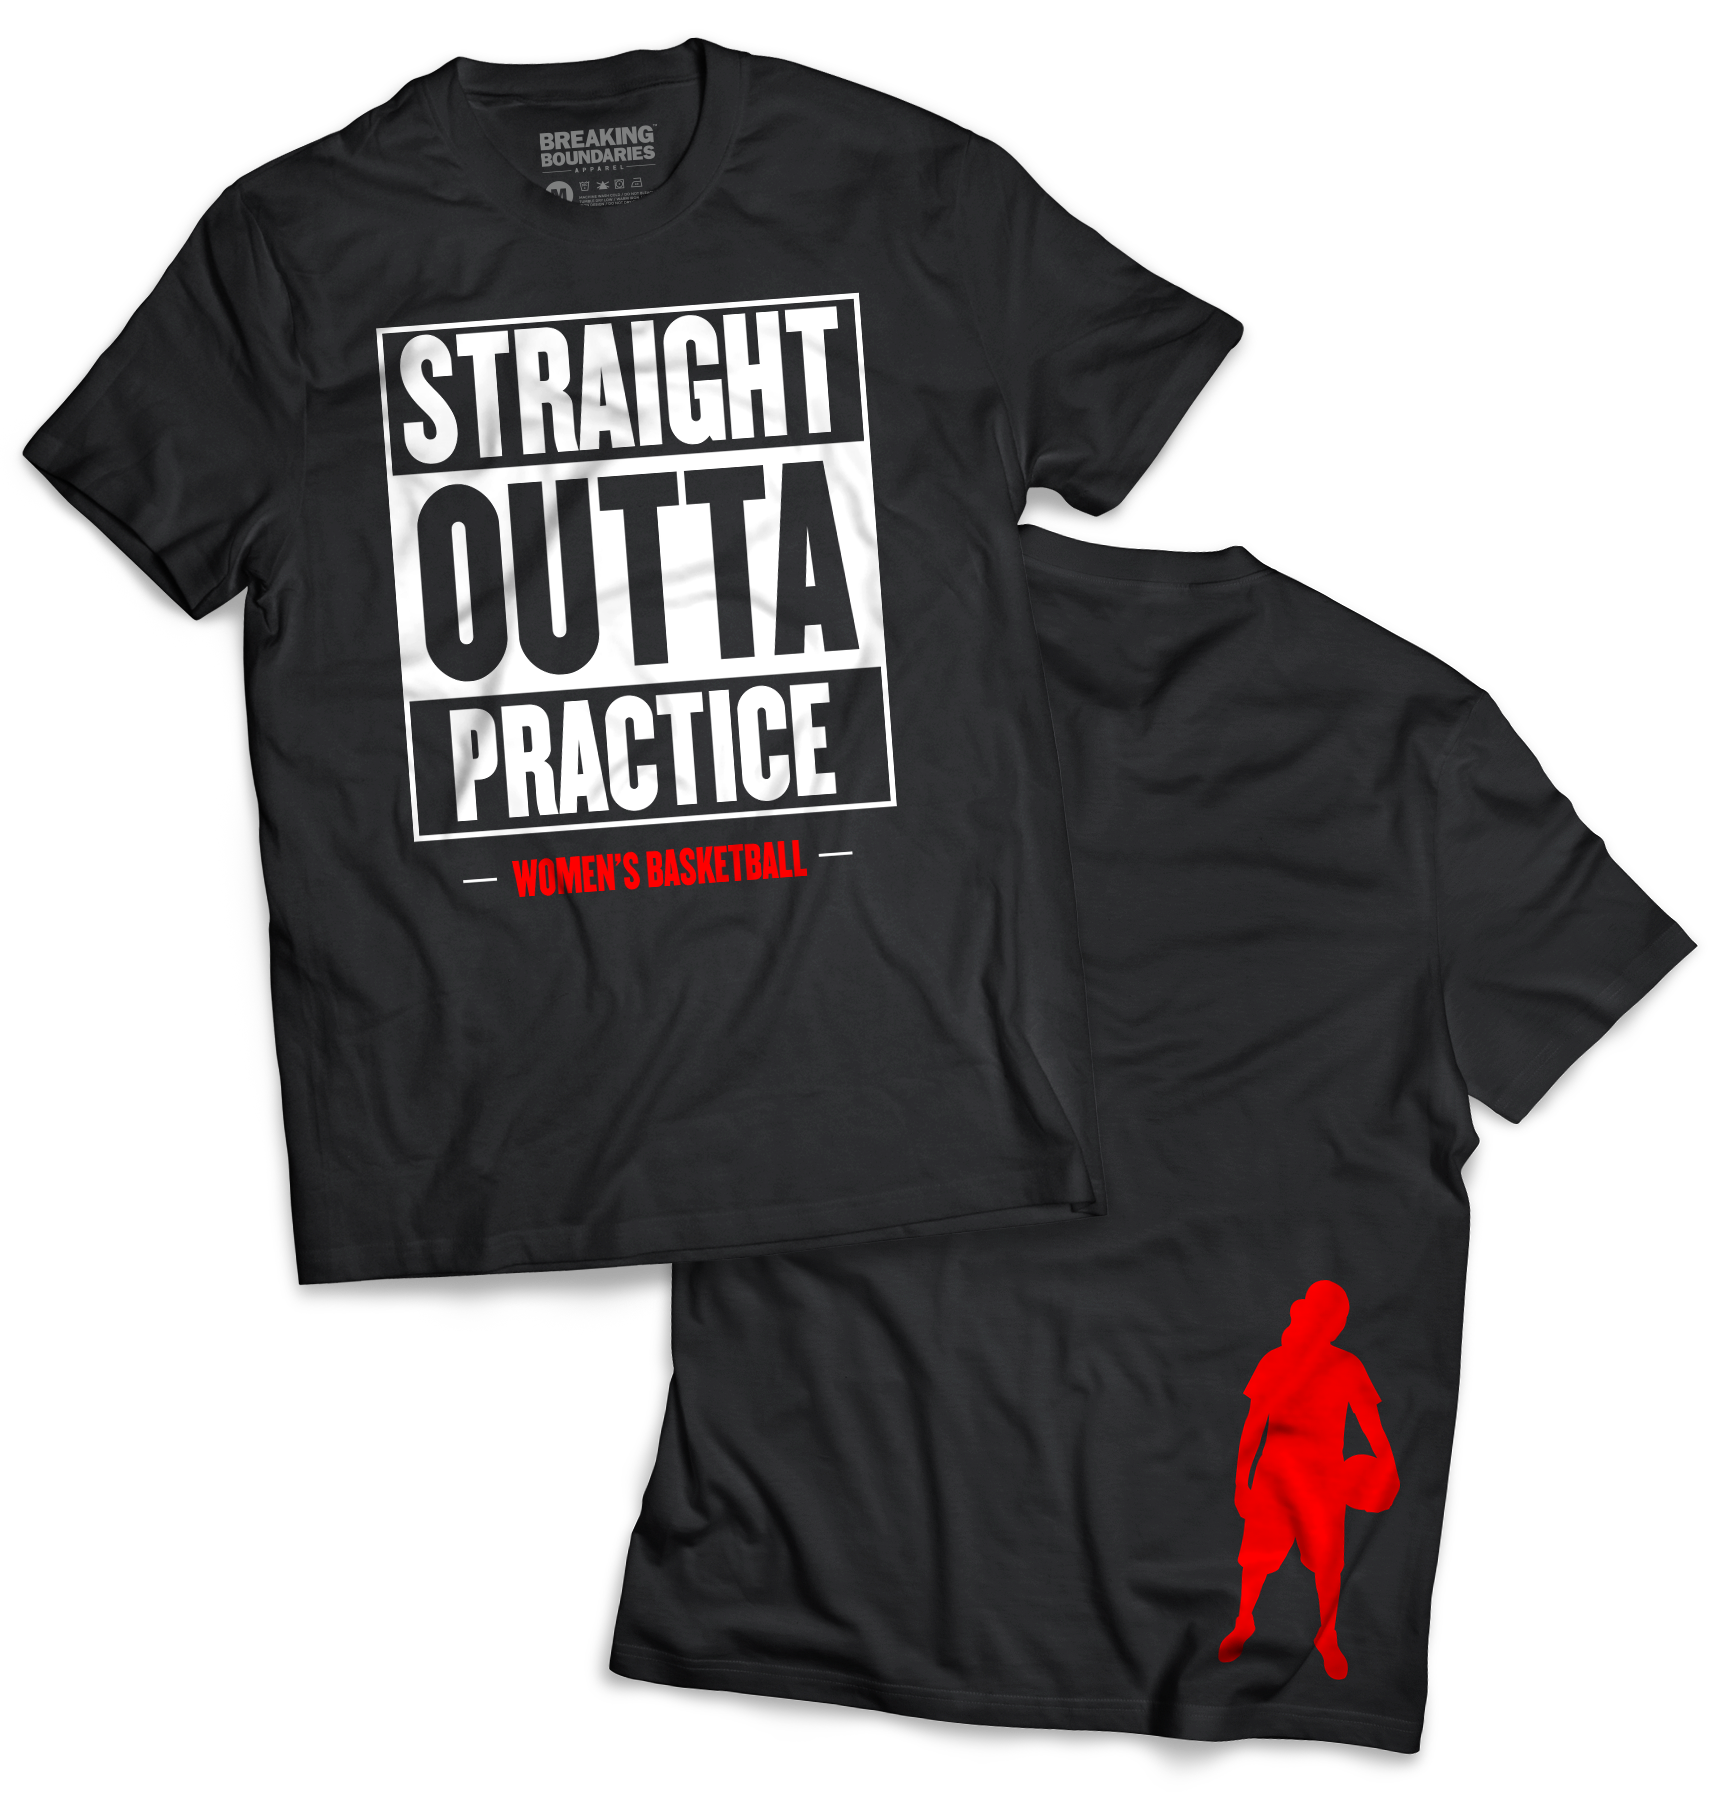 Straight Outta Practice Tee - Women s Basketball. Straight Outta Practice  Tee - Women s Basketball Funny Volleyball Shirts ... fff70b3c36